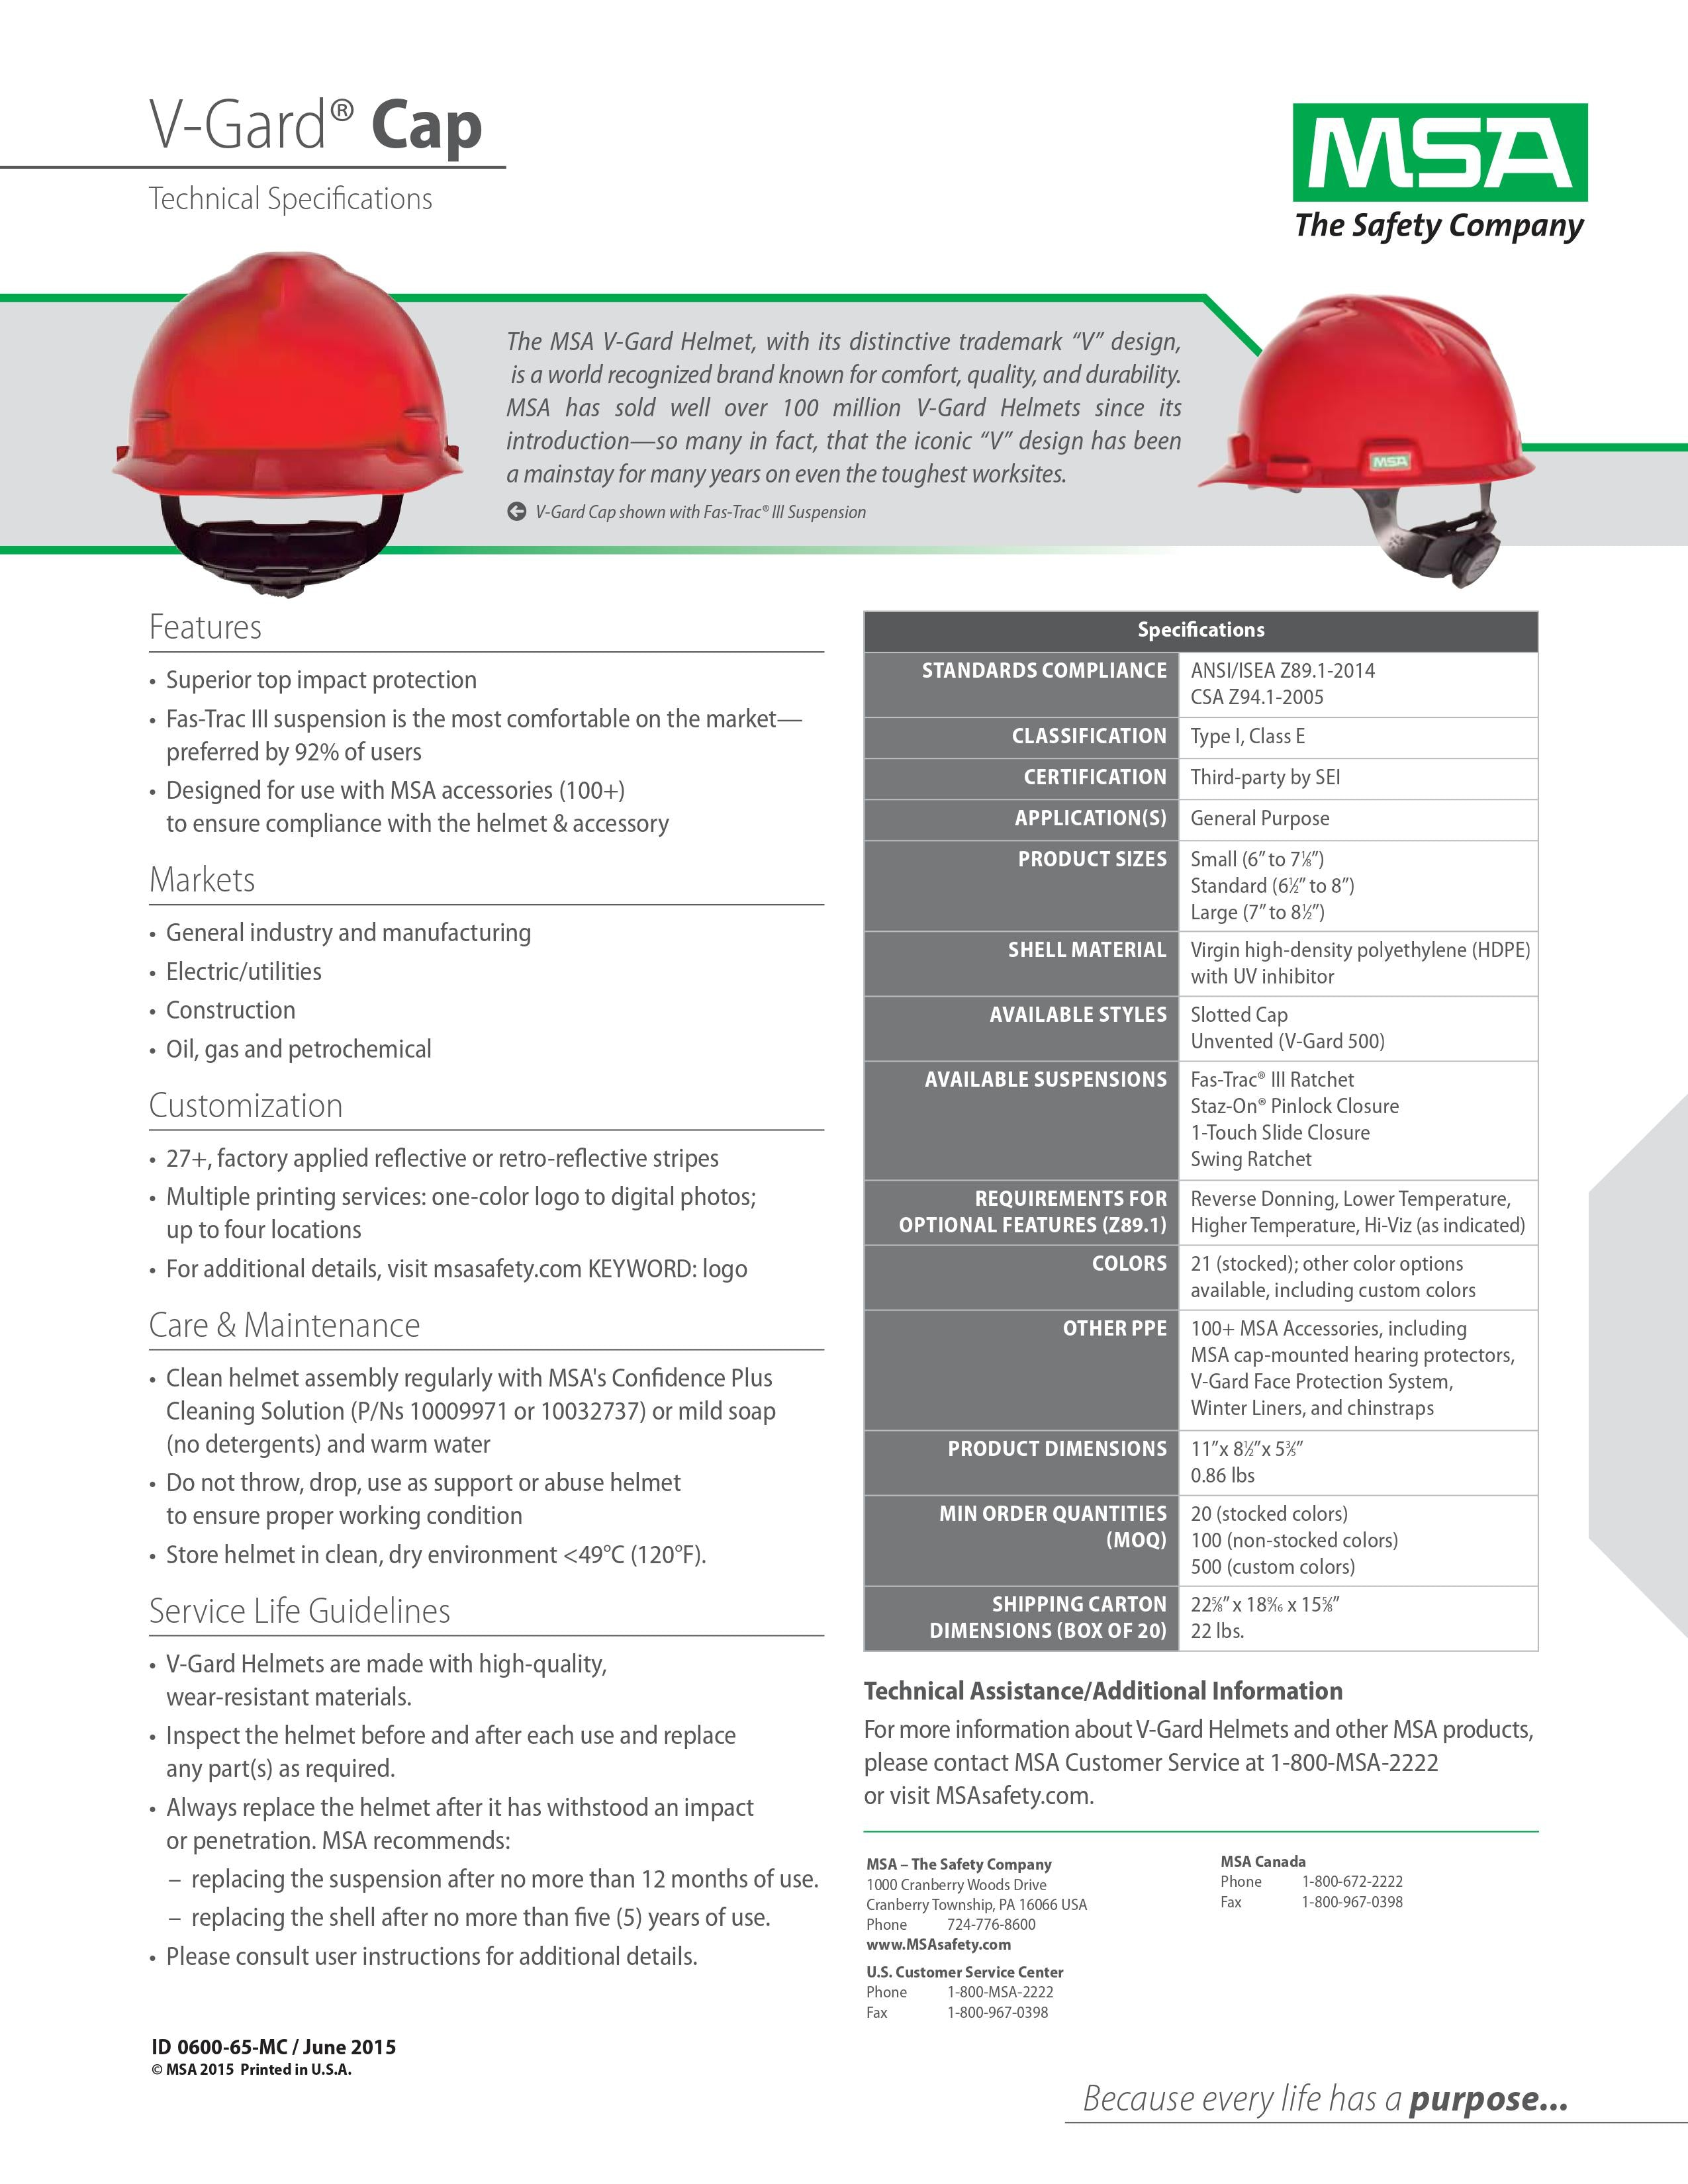 MSA V-Guard Cap Info Sheet